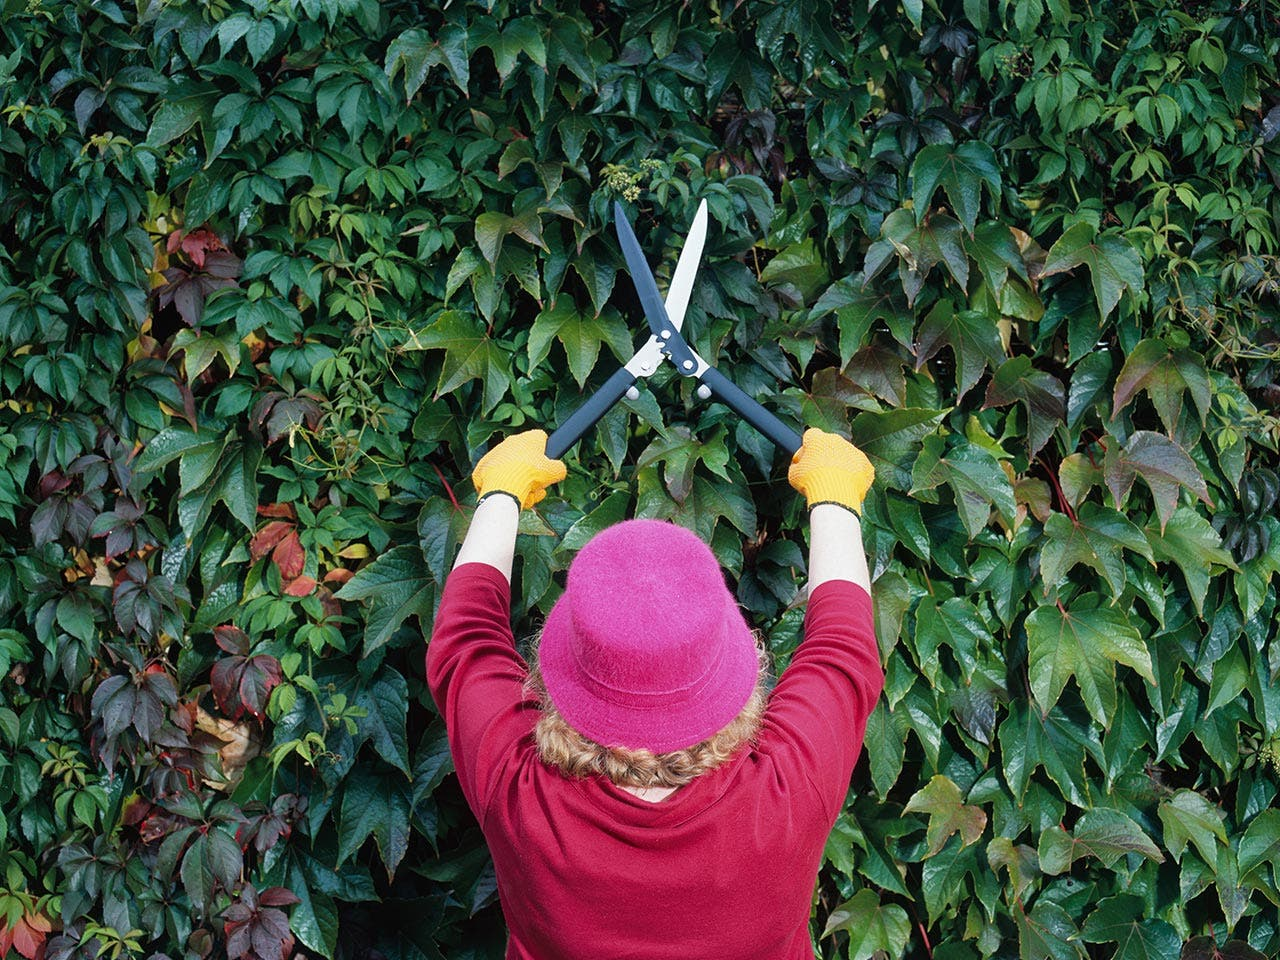 Woman trimming hedges with scissors